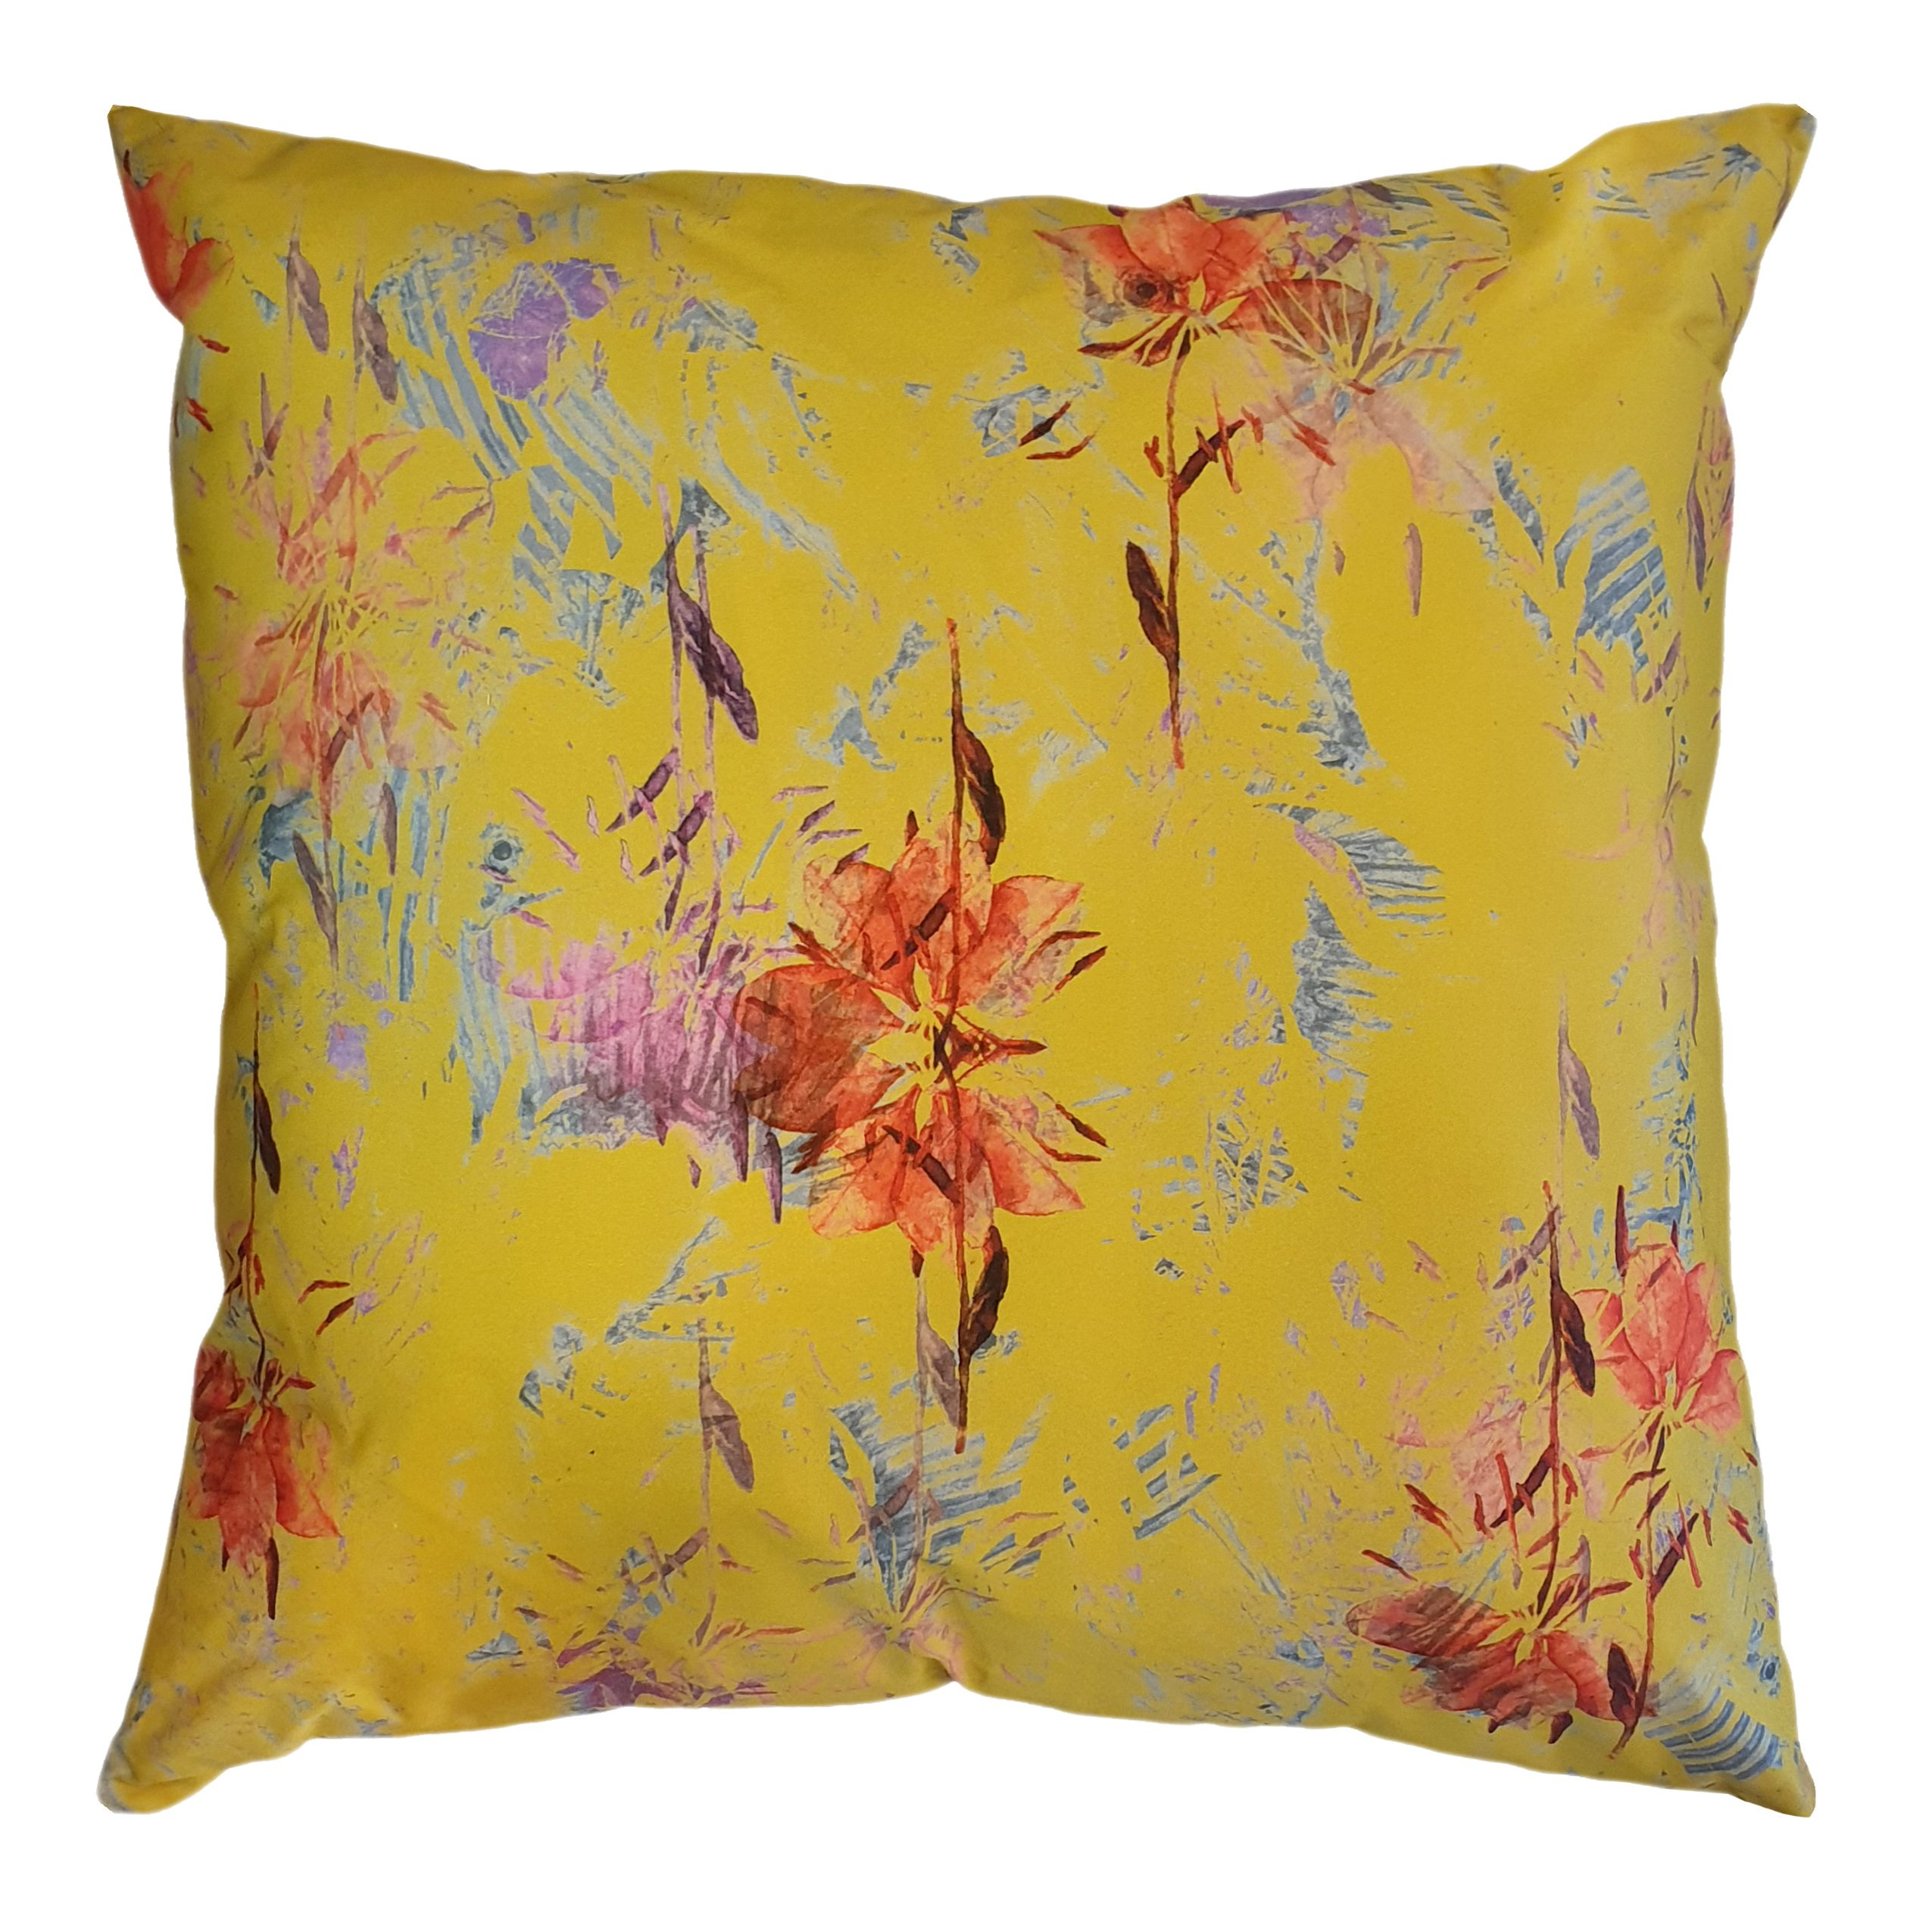 A Warm Welcome Scatter Cushion | IV Fashion Design